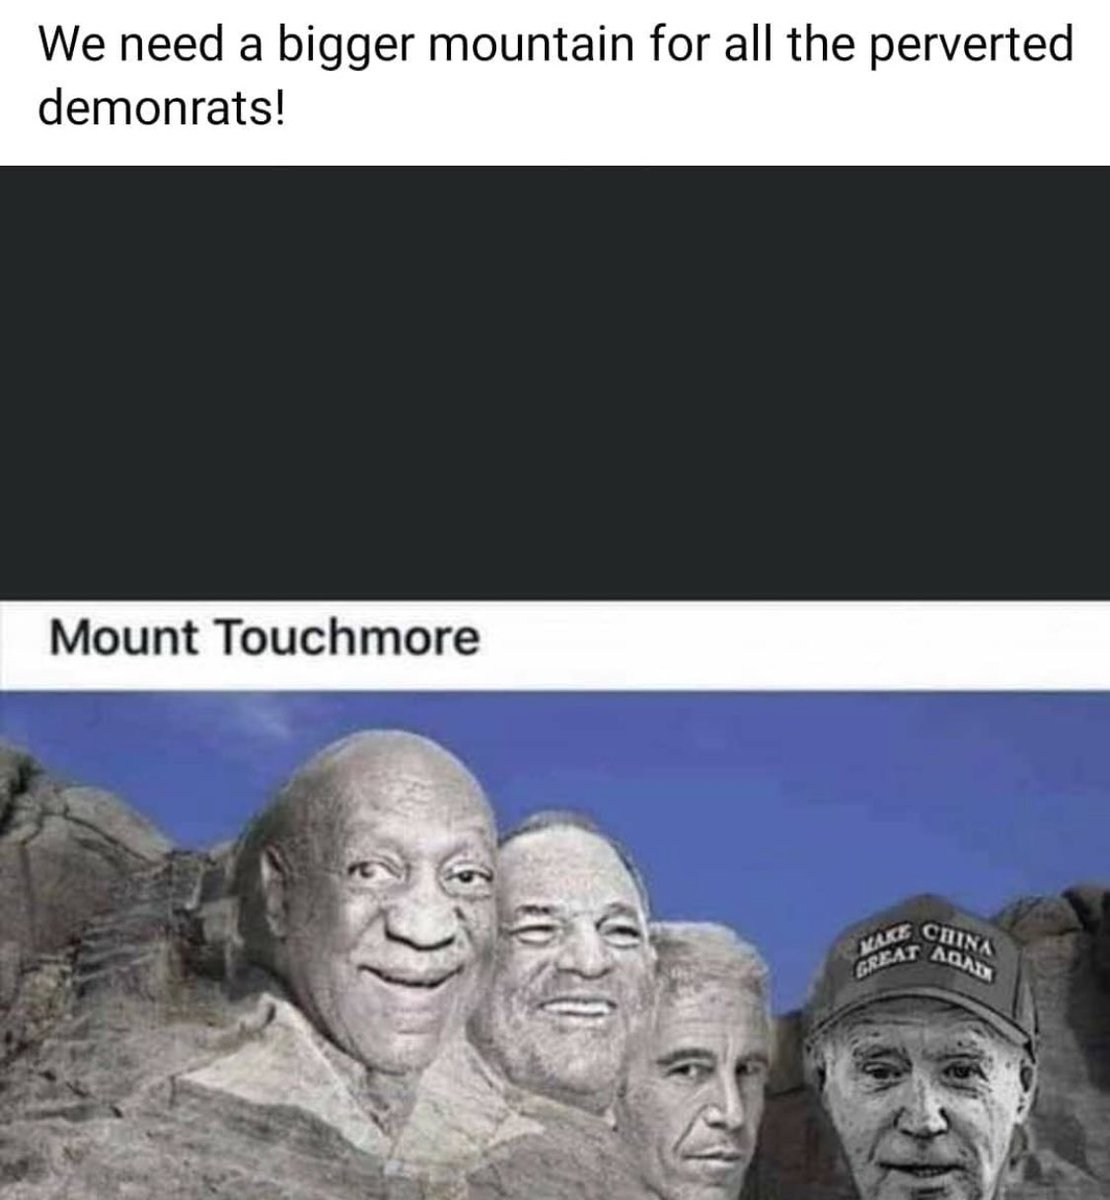 #WakeUpAmerica .. We're going to need a bigger #mountains Sadly the #DemocratsAreDestroyingAmerica we might as well rename #MountRushmore .. #MountTouchMore after all these perverted #Democrats #LiberalismIsTheRealPandemic pic.twitter.com/kdnvyV5MhY